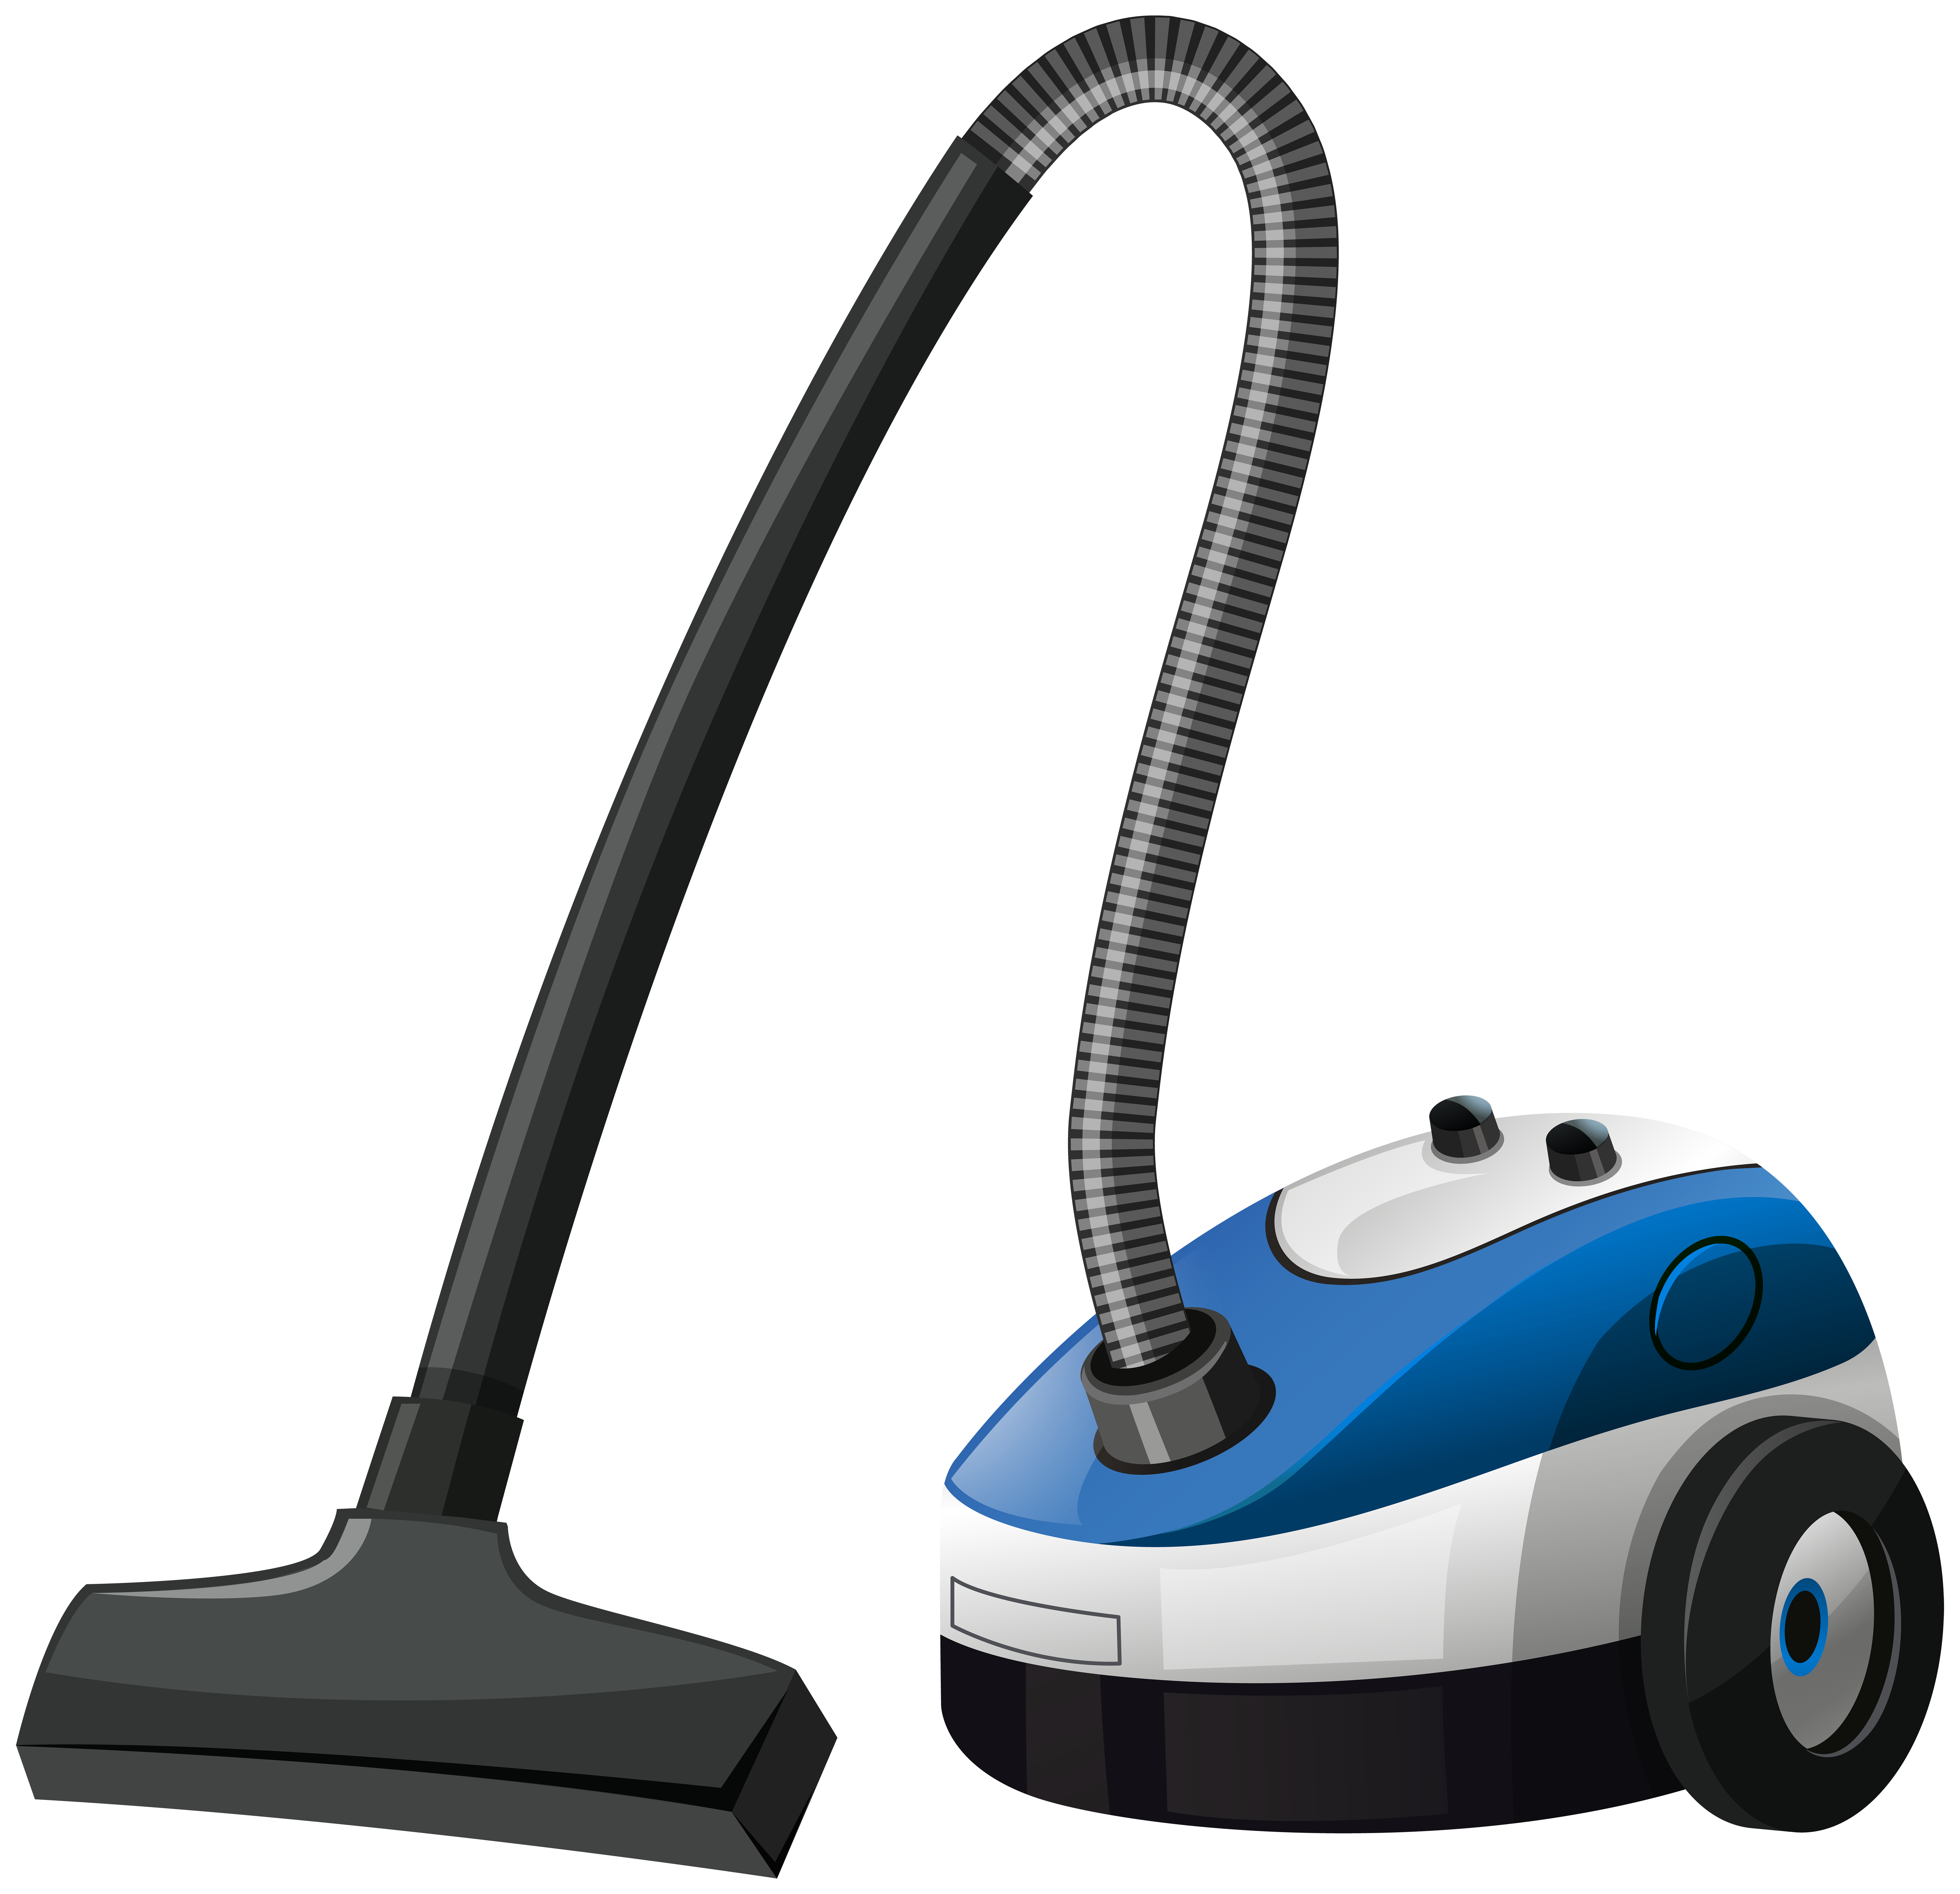 svg freeuse library Vacuum clipart. Cleaner png clip art